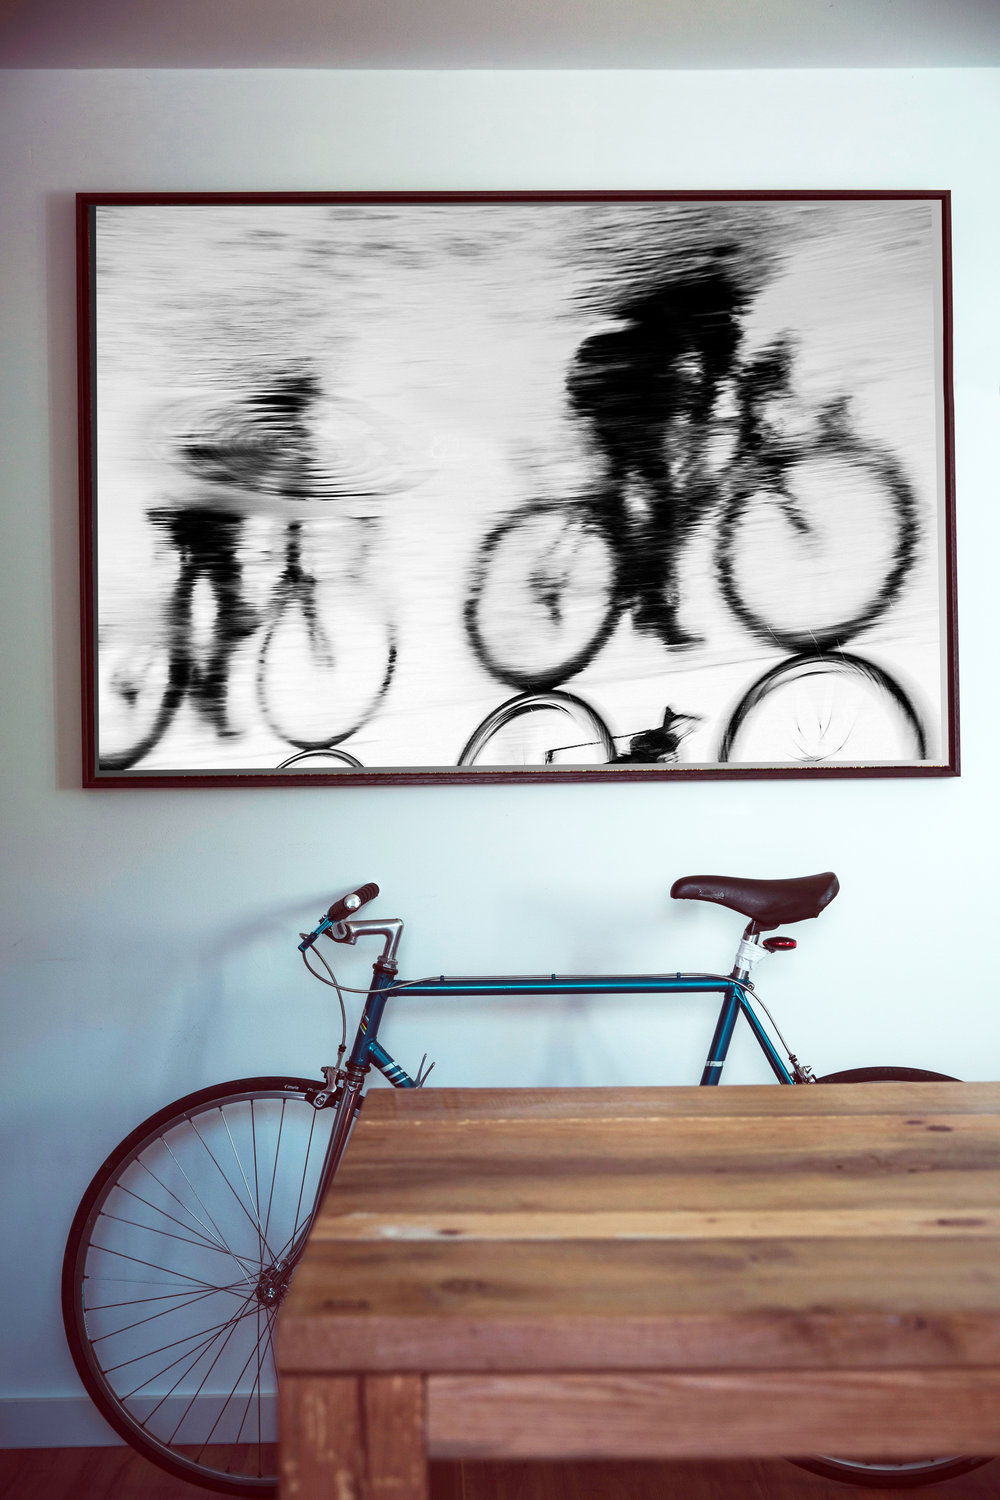 Reflected cyclists photographic print by Andrew Lever